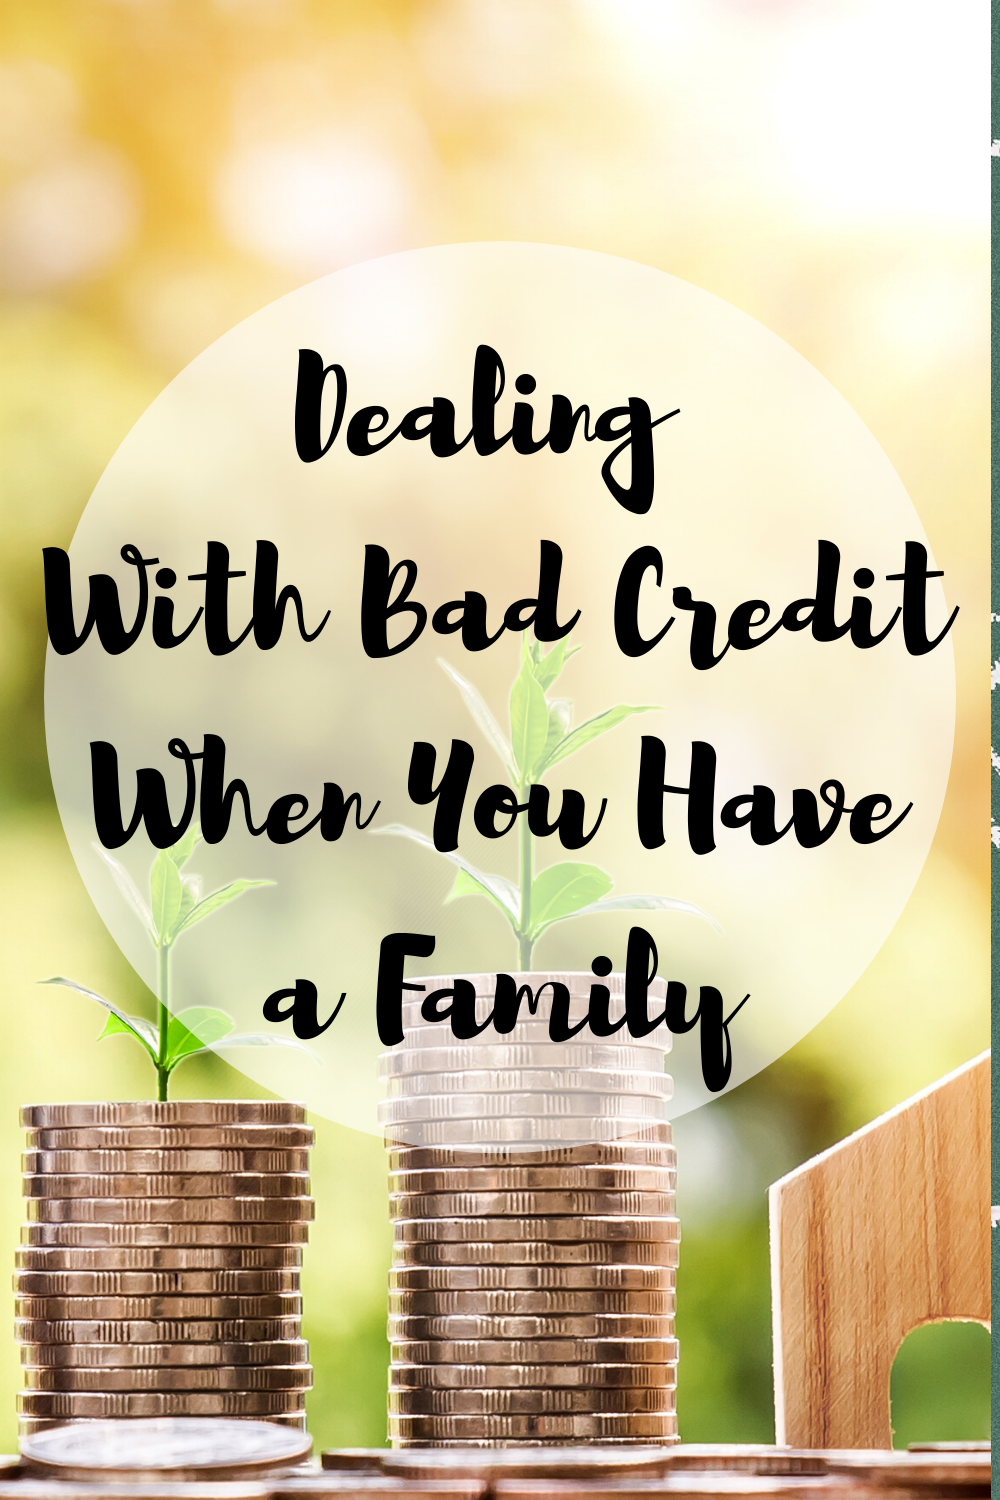 Dealing With Bad Credit When You Have A Family Mom and